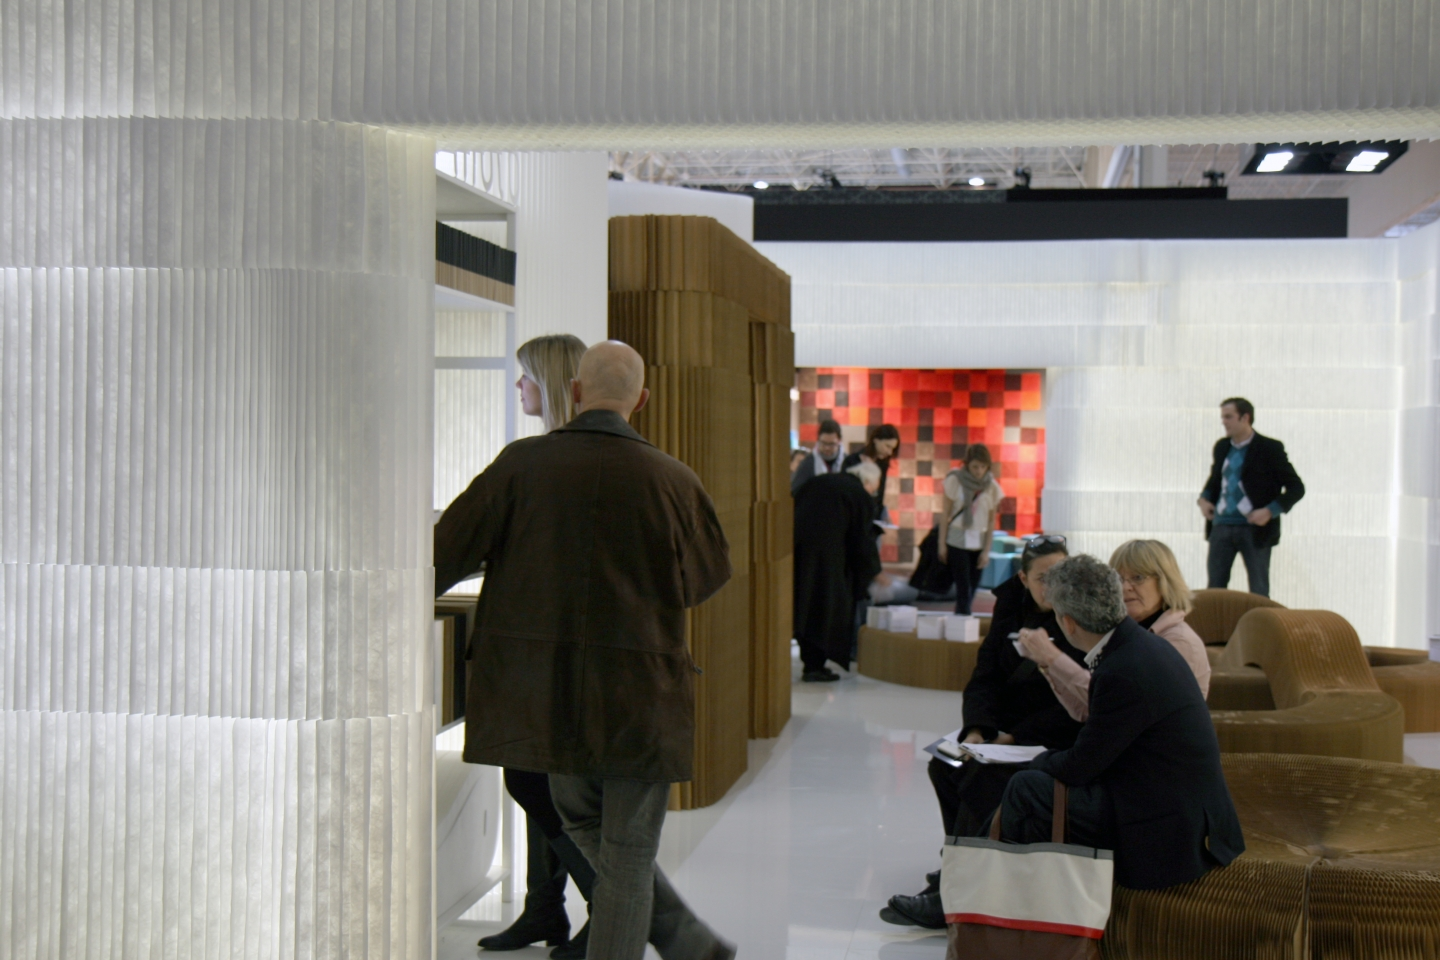 textile and paper softblock / modular room divider + portable paper furniture - molo soft collection of flexible, modular space partitions, seating, tables and lighting at Maison & Objet 2010 in Paris